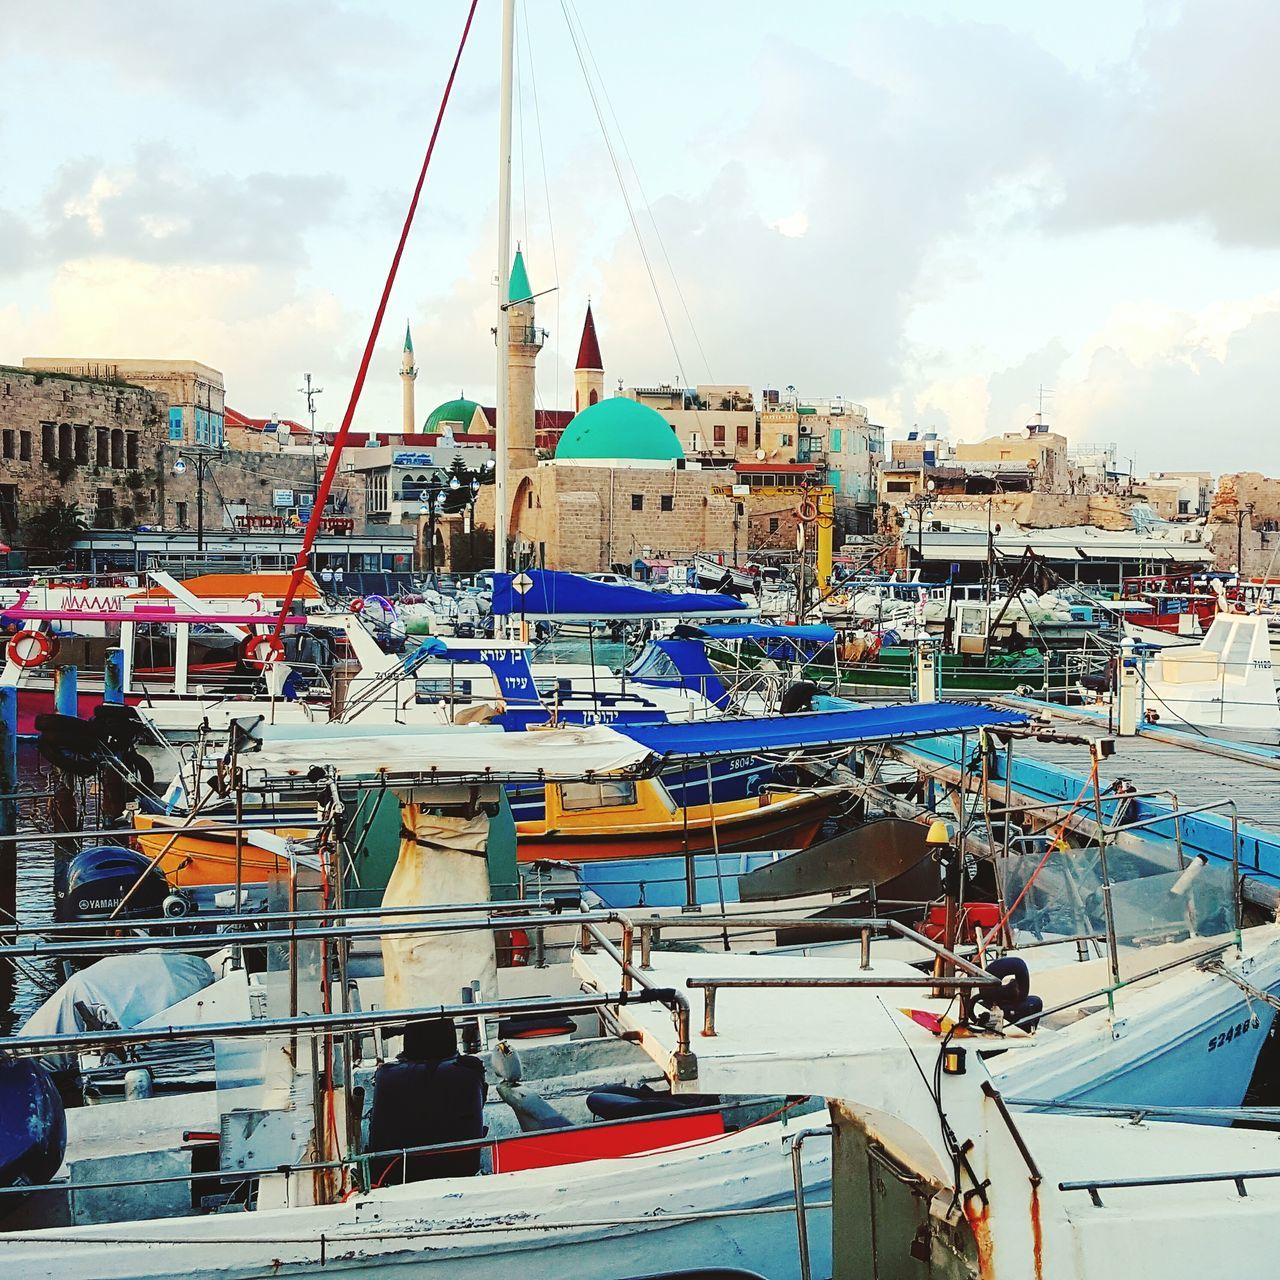 port in the Arabian city Cloud - Sky Outdoors Marina Sea Water Transportation Ship Moored No People Sunset Vacations Beach Commercial Dock Travel Destinations Nautical Vessel Yacht